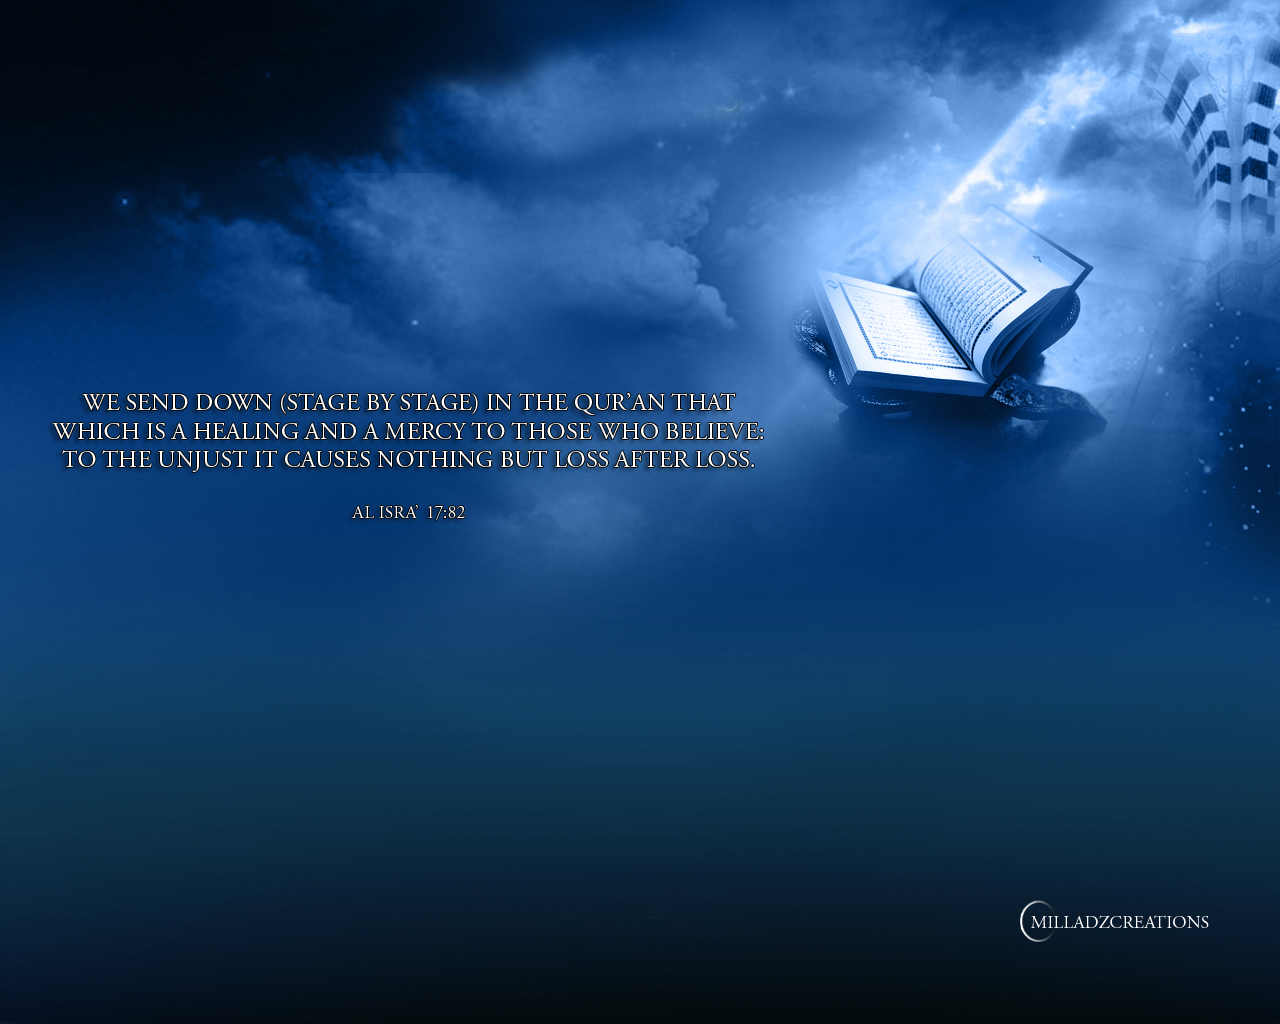 Free islamic wallpapers desktop background images - IslamCan.com